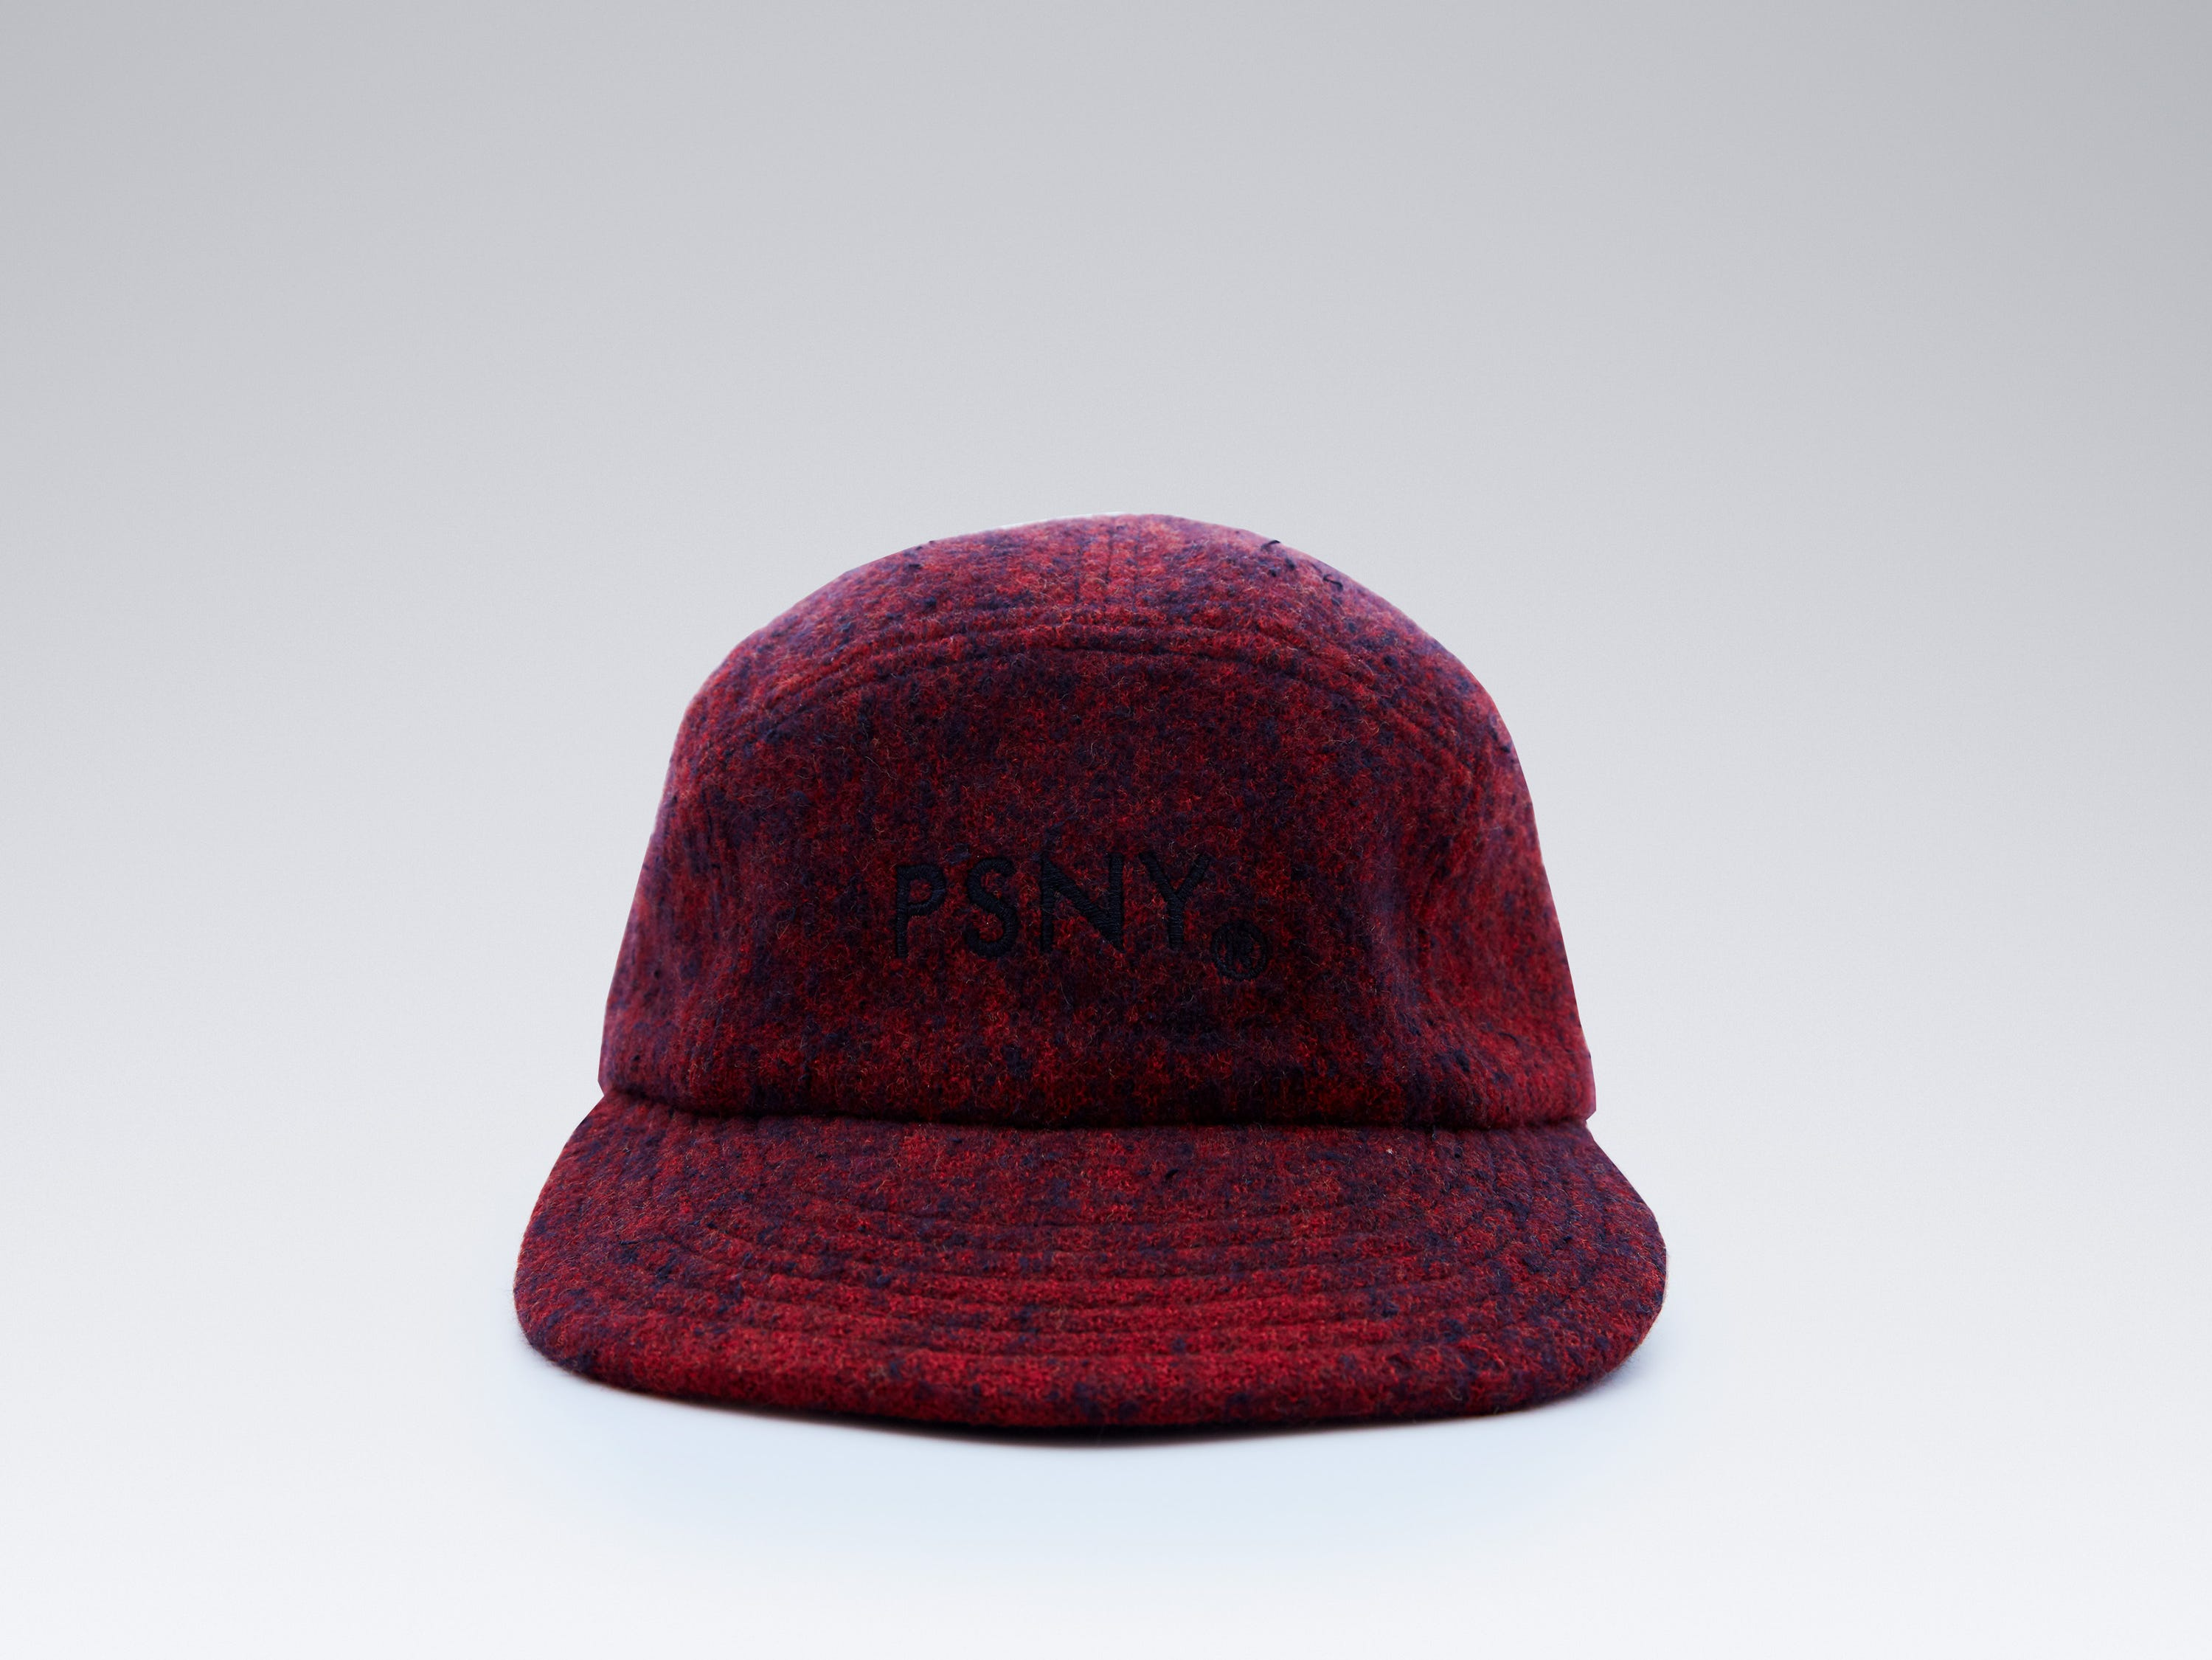 The limited-edition Public School x Eileen Fisher collection made from recycled garments includes a felted logo hat for $125. The collection is part of Eileen Fisher's Renew program, which has taken back over 1 million garments from customers and used material from them to create new designs.